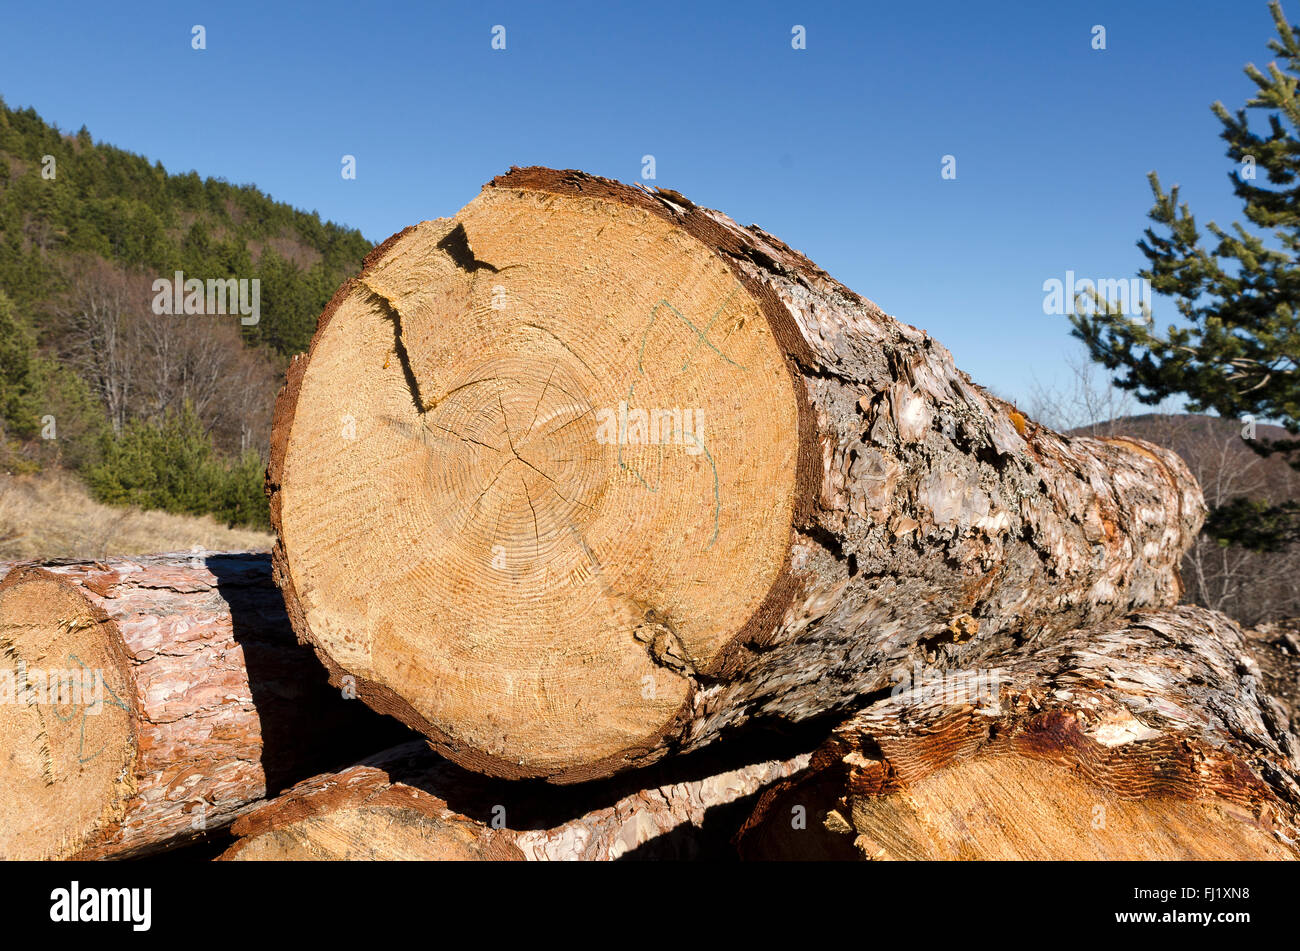 Coniferous material in a stack and beautiful blue sky - Stock Image